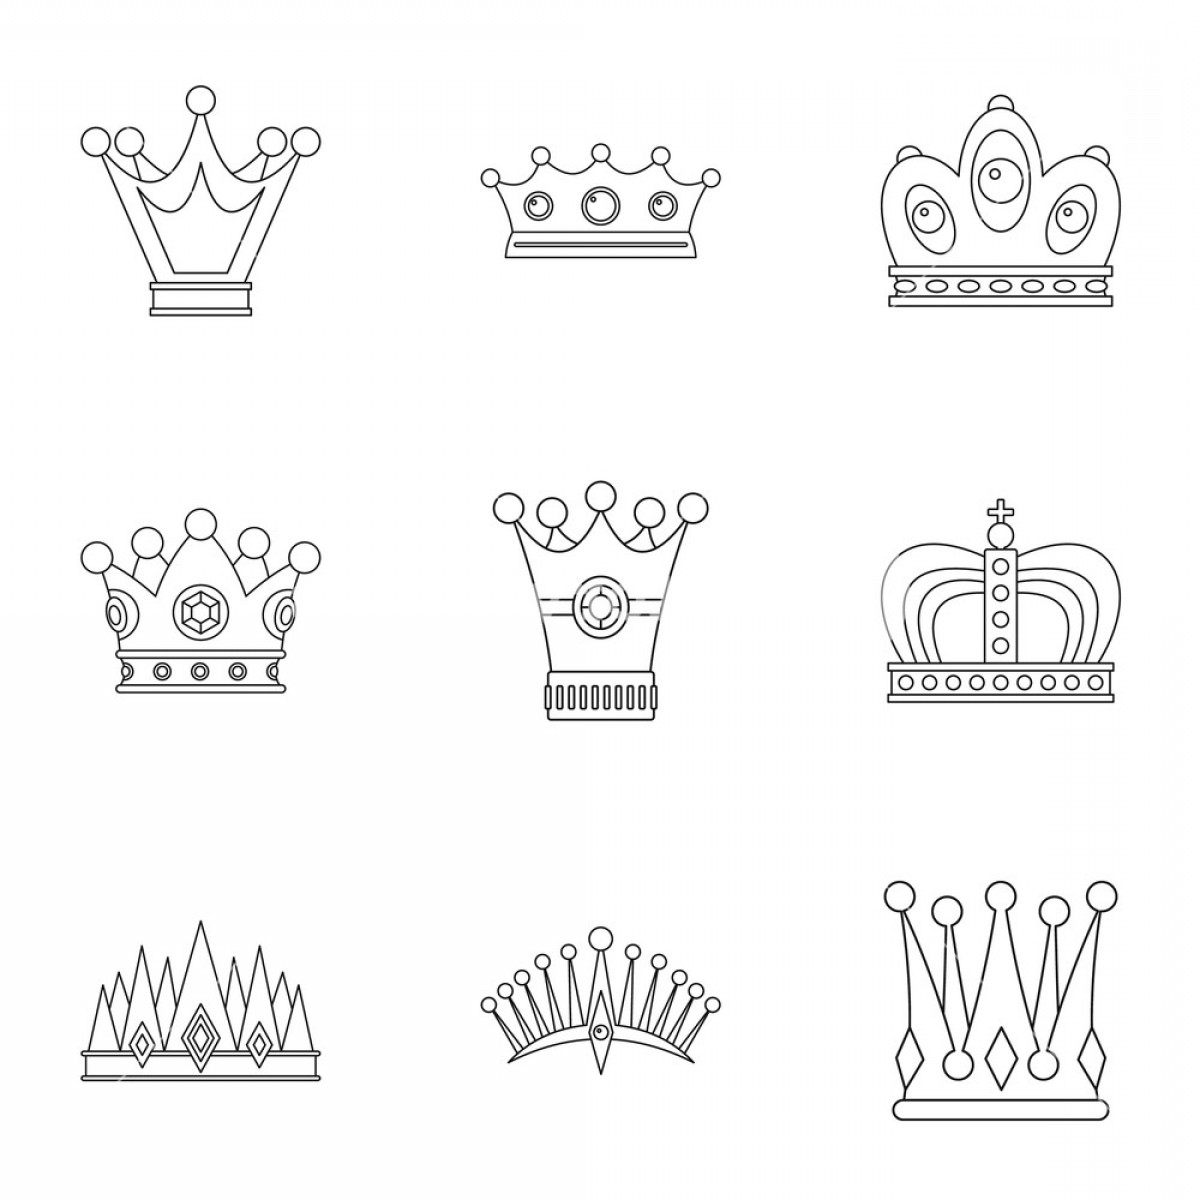 Crown White Outline Vector: Antique Crown Icon Set Outline Set Of Antique Crown Vector Icons For Web Isolated On White Background Sxcubcejkagge